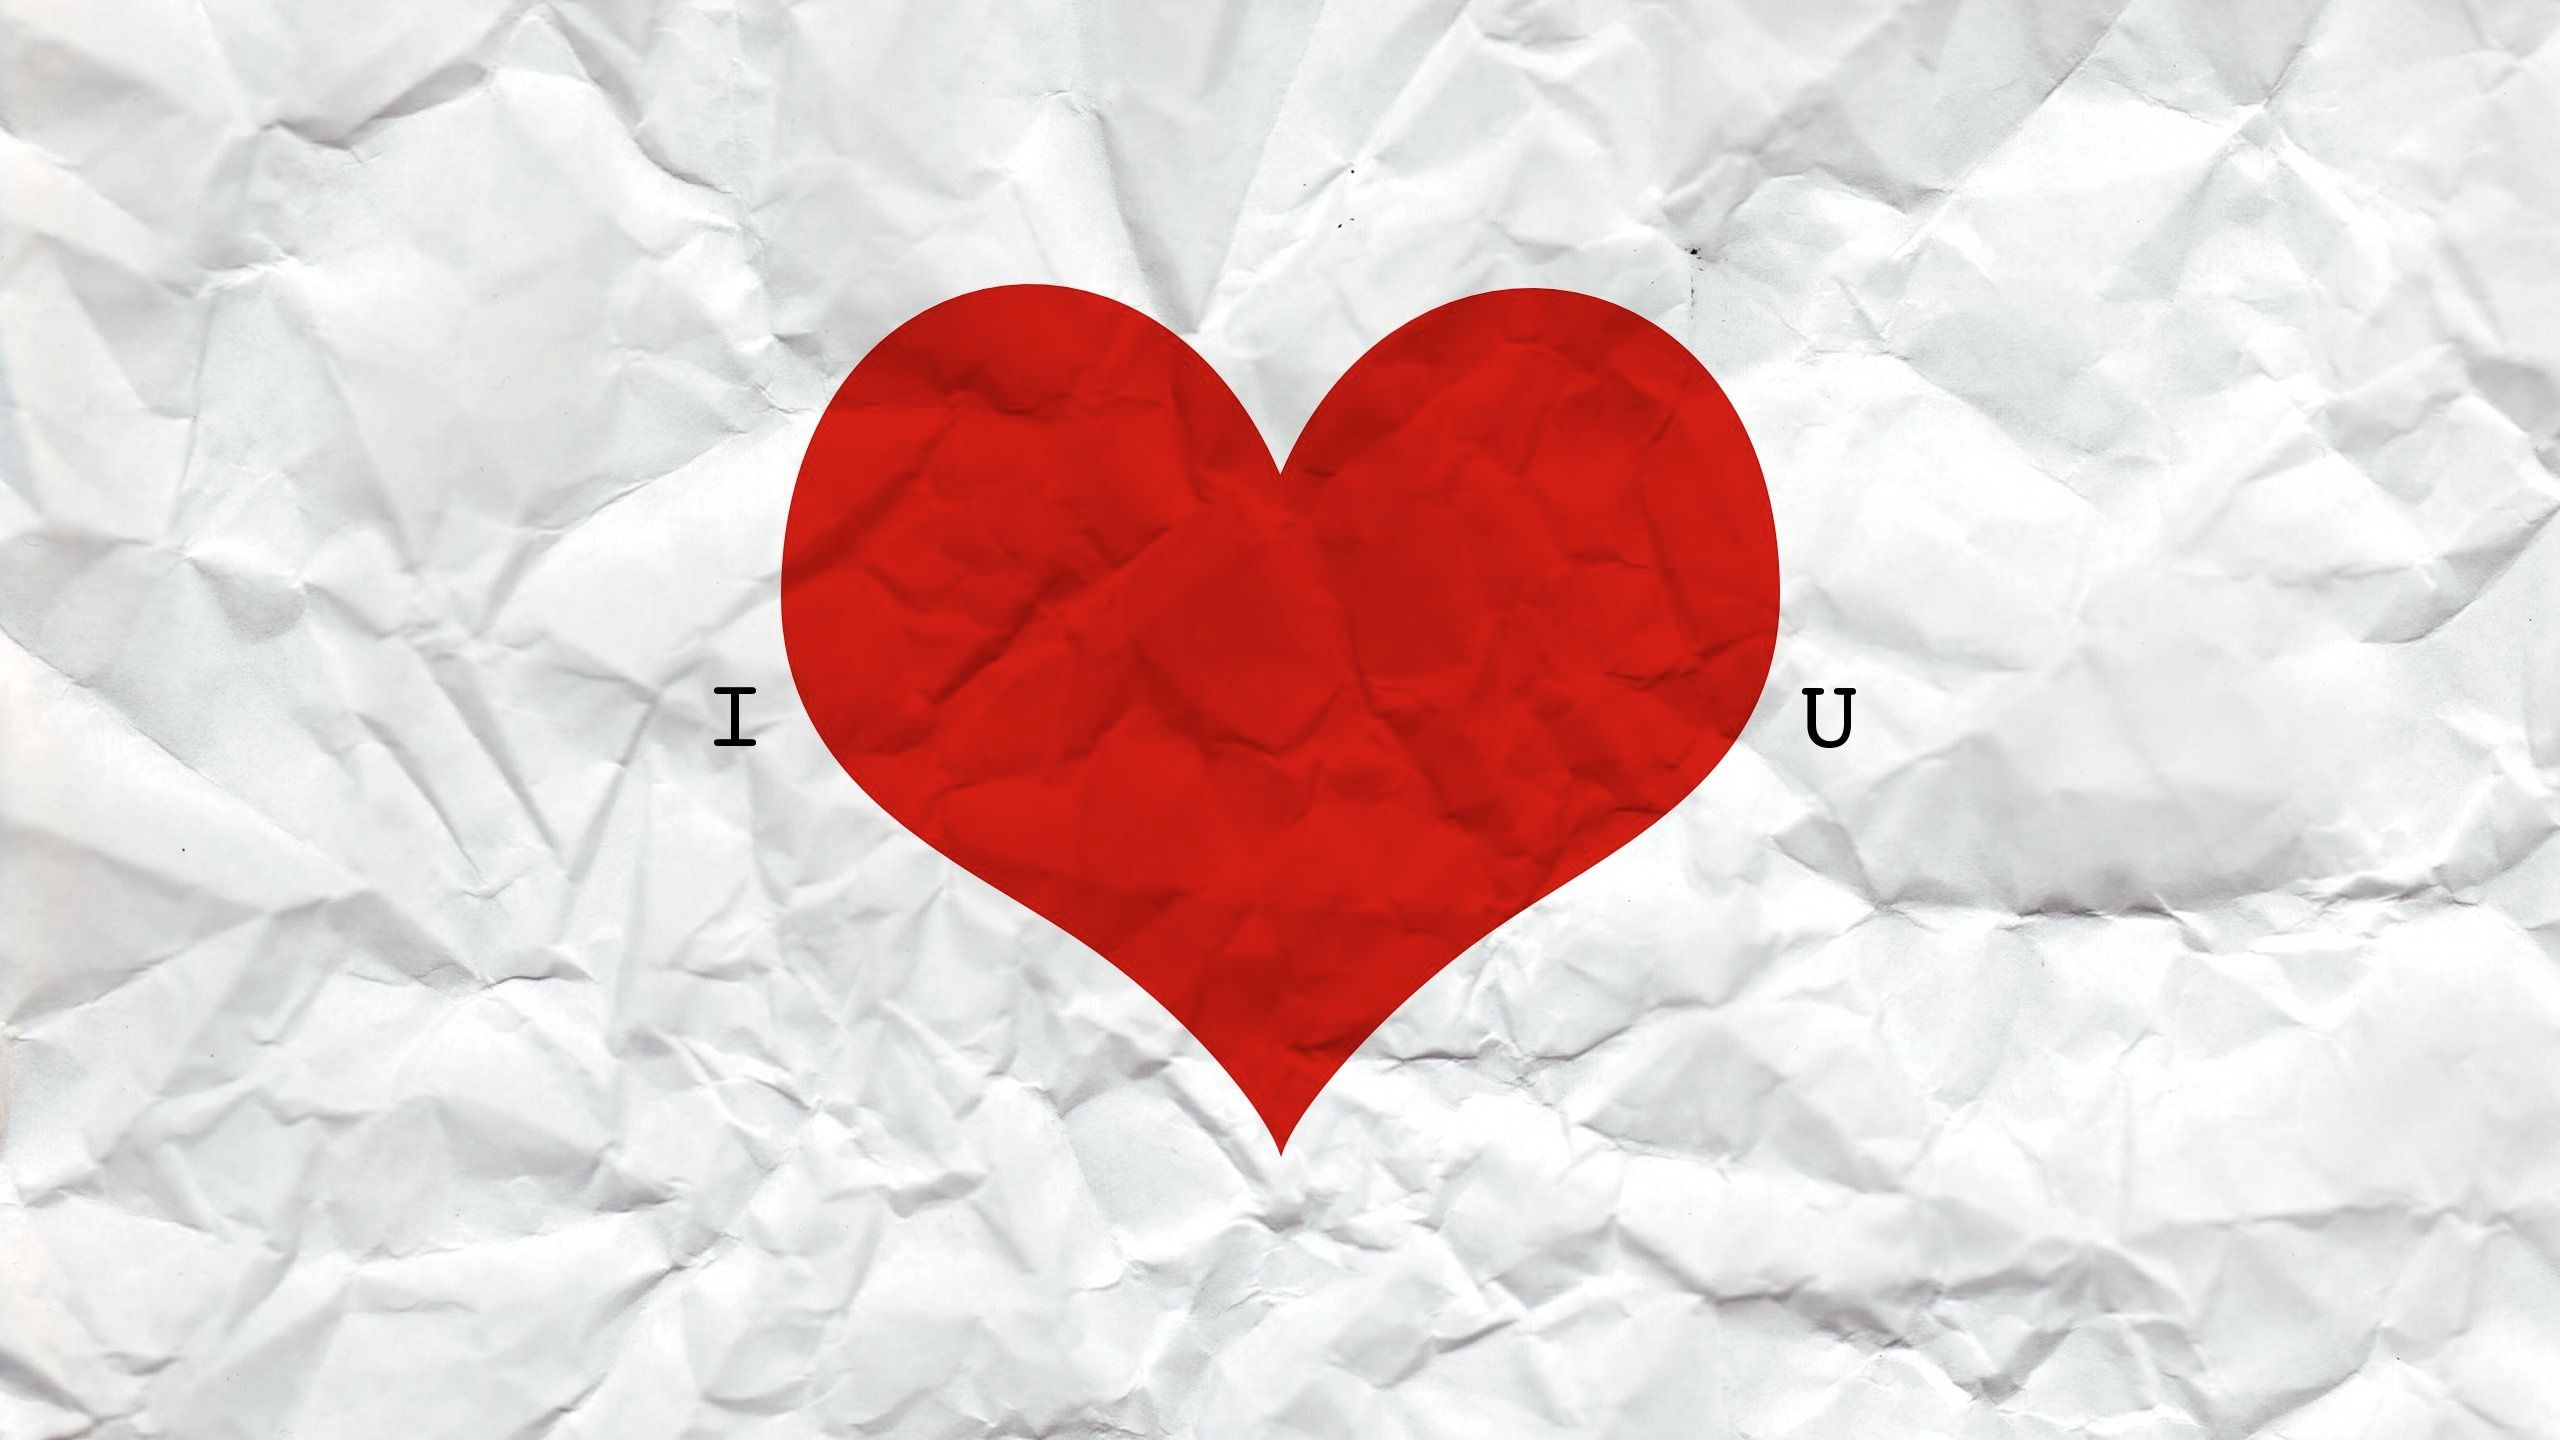 2560x1440 20 Best Valentines Day Wallpapers to Send your Loved Ones ...